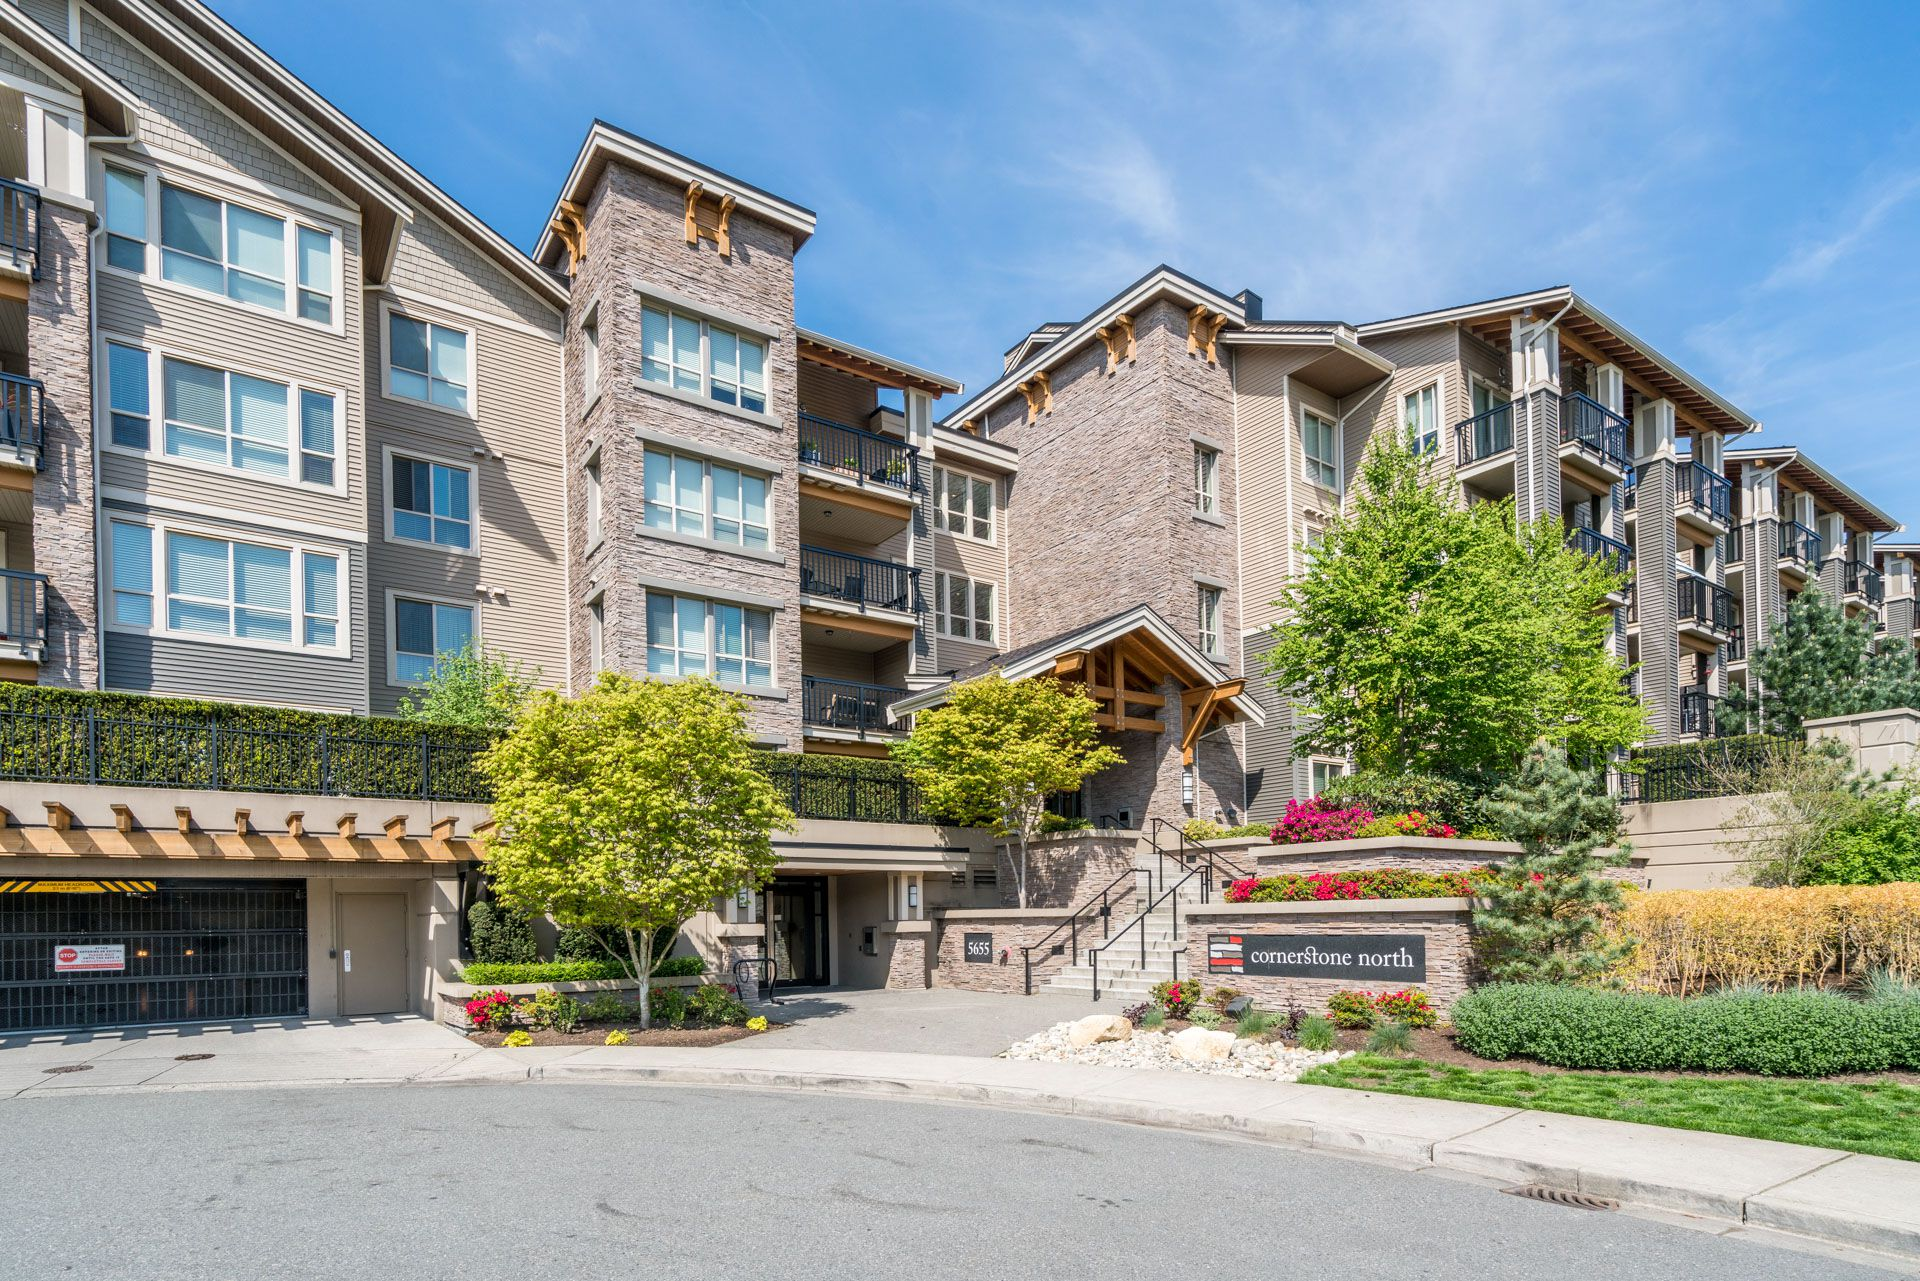 Main Photo: 203 5655 210A STREET in Langley: Salmon River Condo for sale : MLS®# R2266313